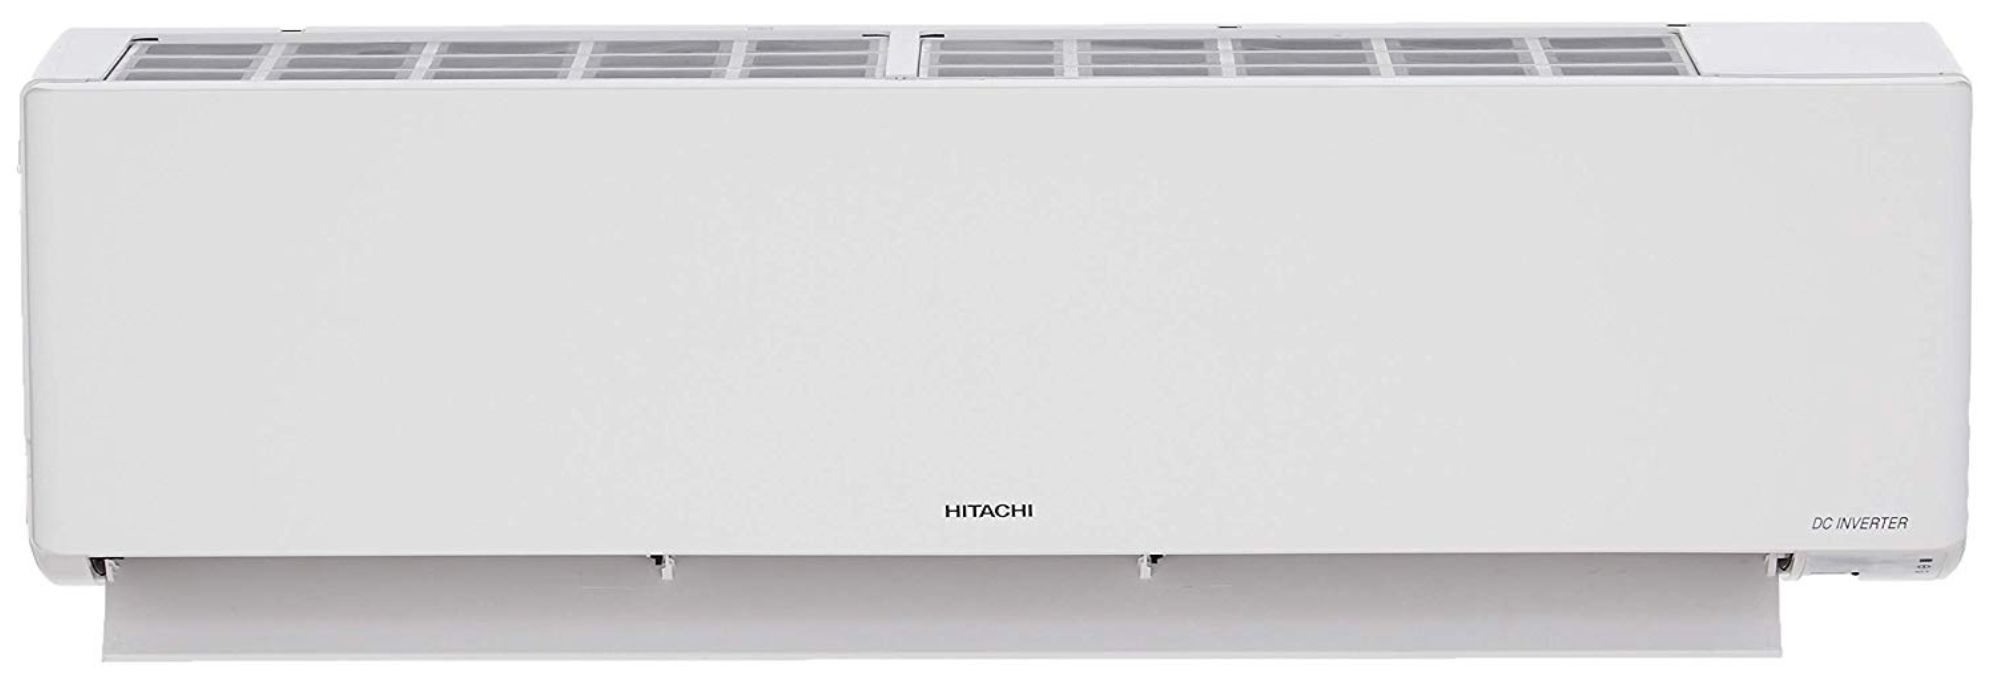 Best AC in India - Hitachi RSD317HCEA Inverter Split AC